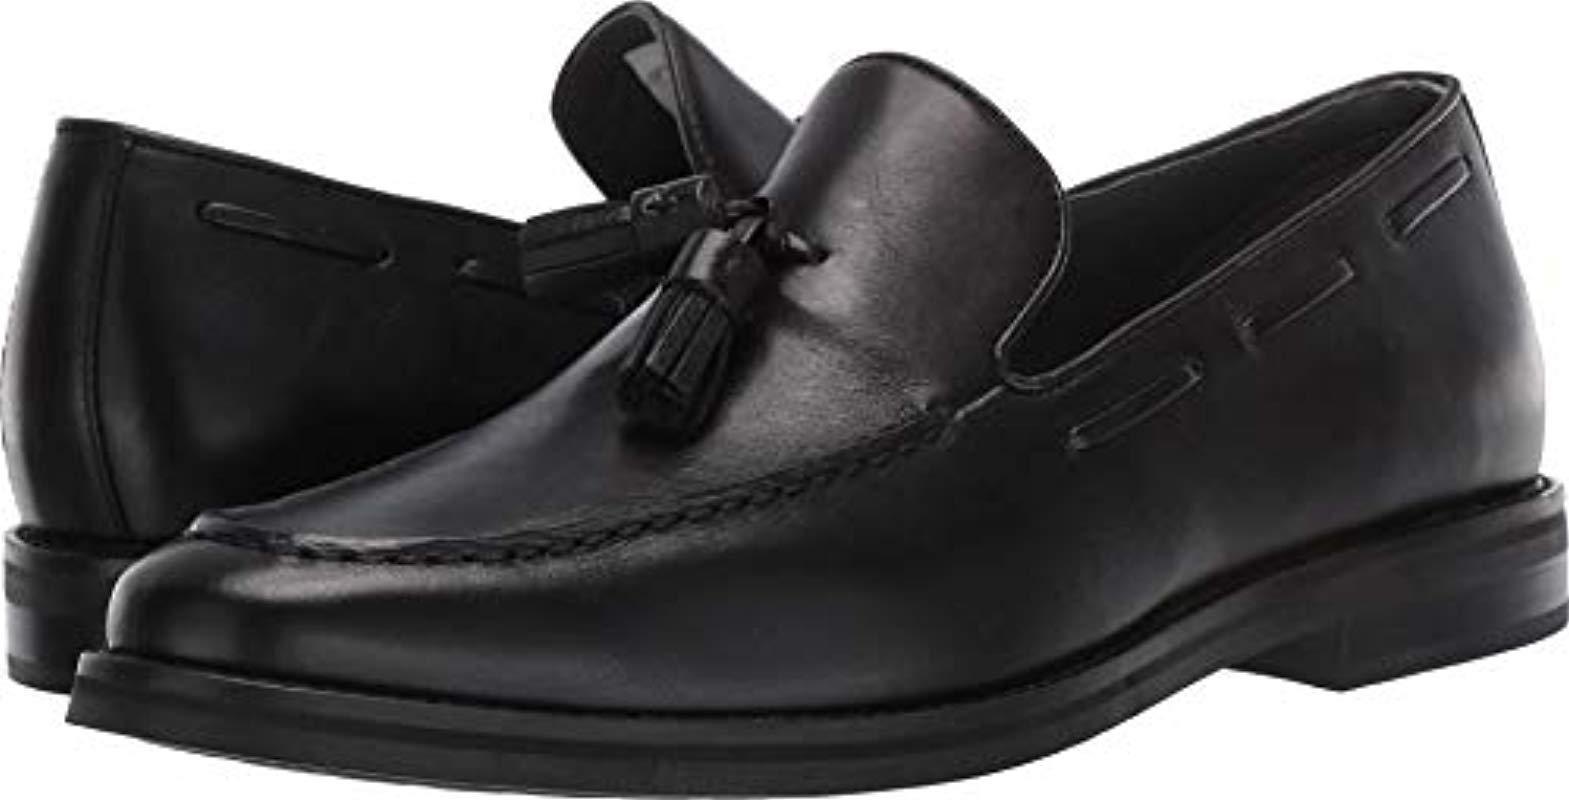 41ff96fb230 Sperry Top-Sider. Men s Gold Cup Exeter Tassel Penny Loafer ...